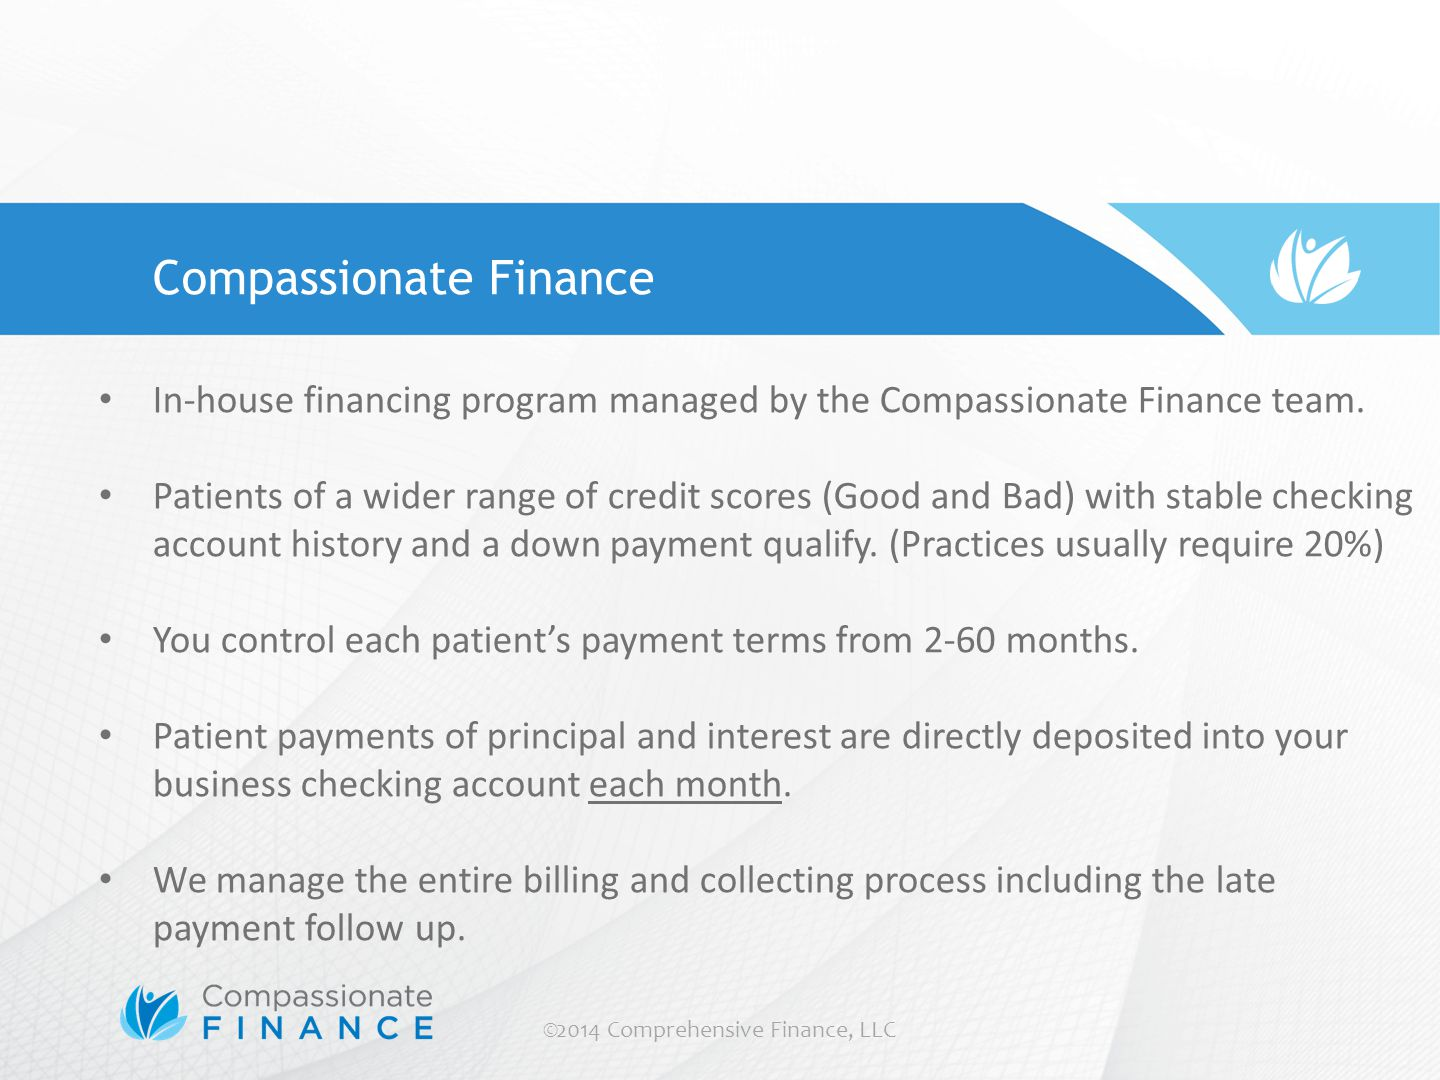 ©2014 Comprehensive Finance, LLC